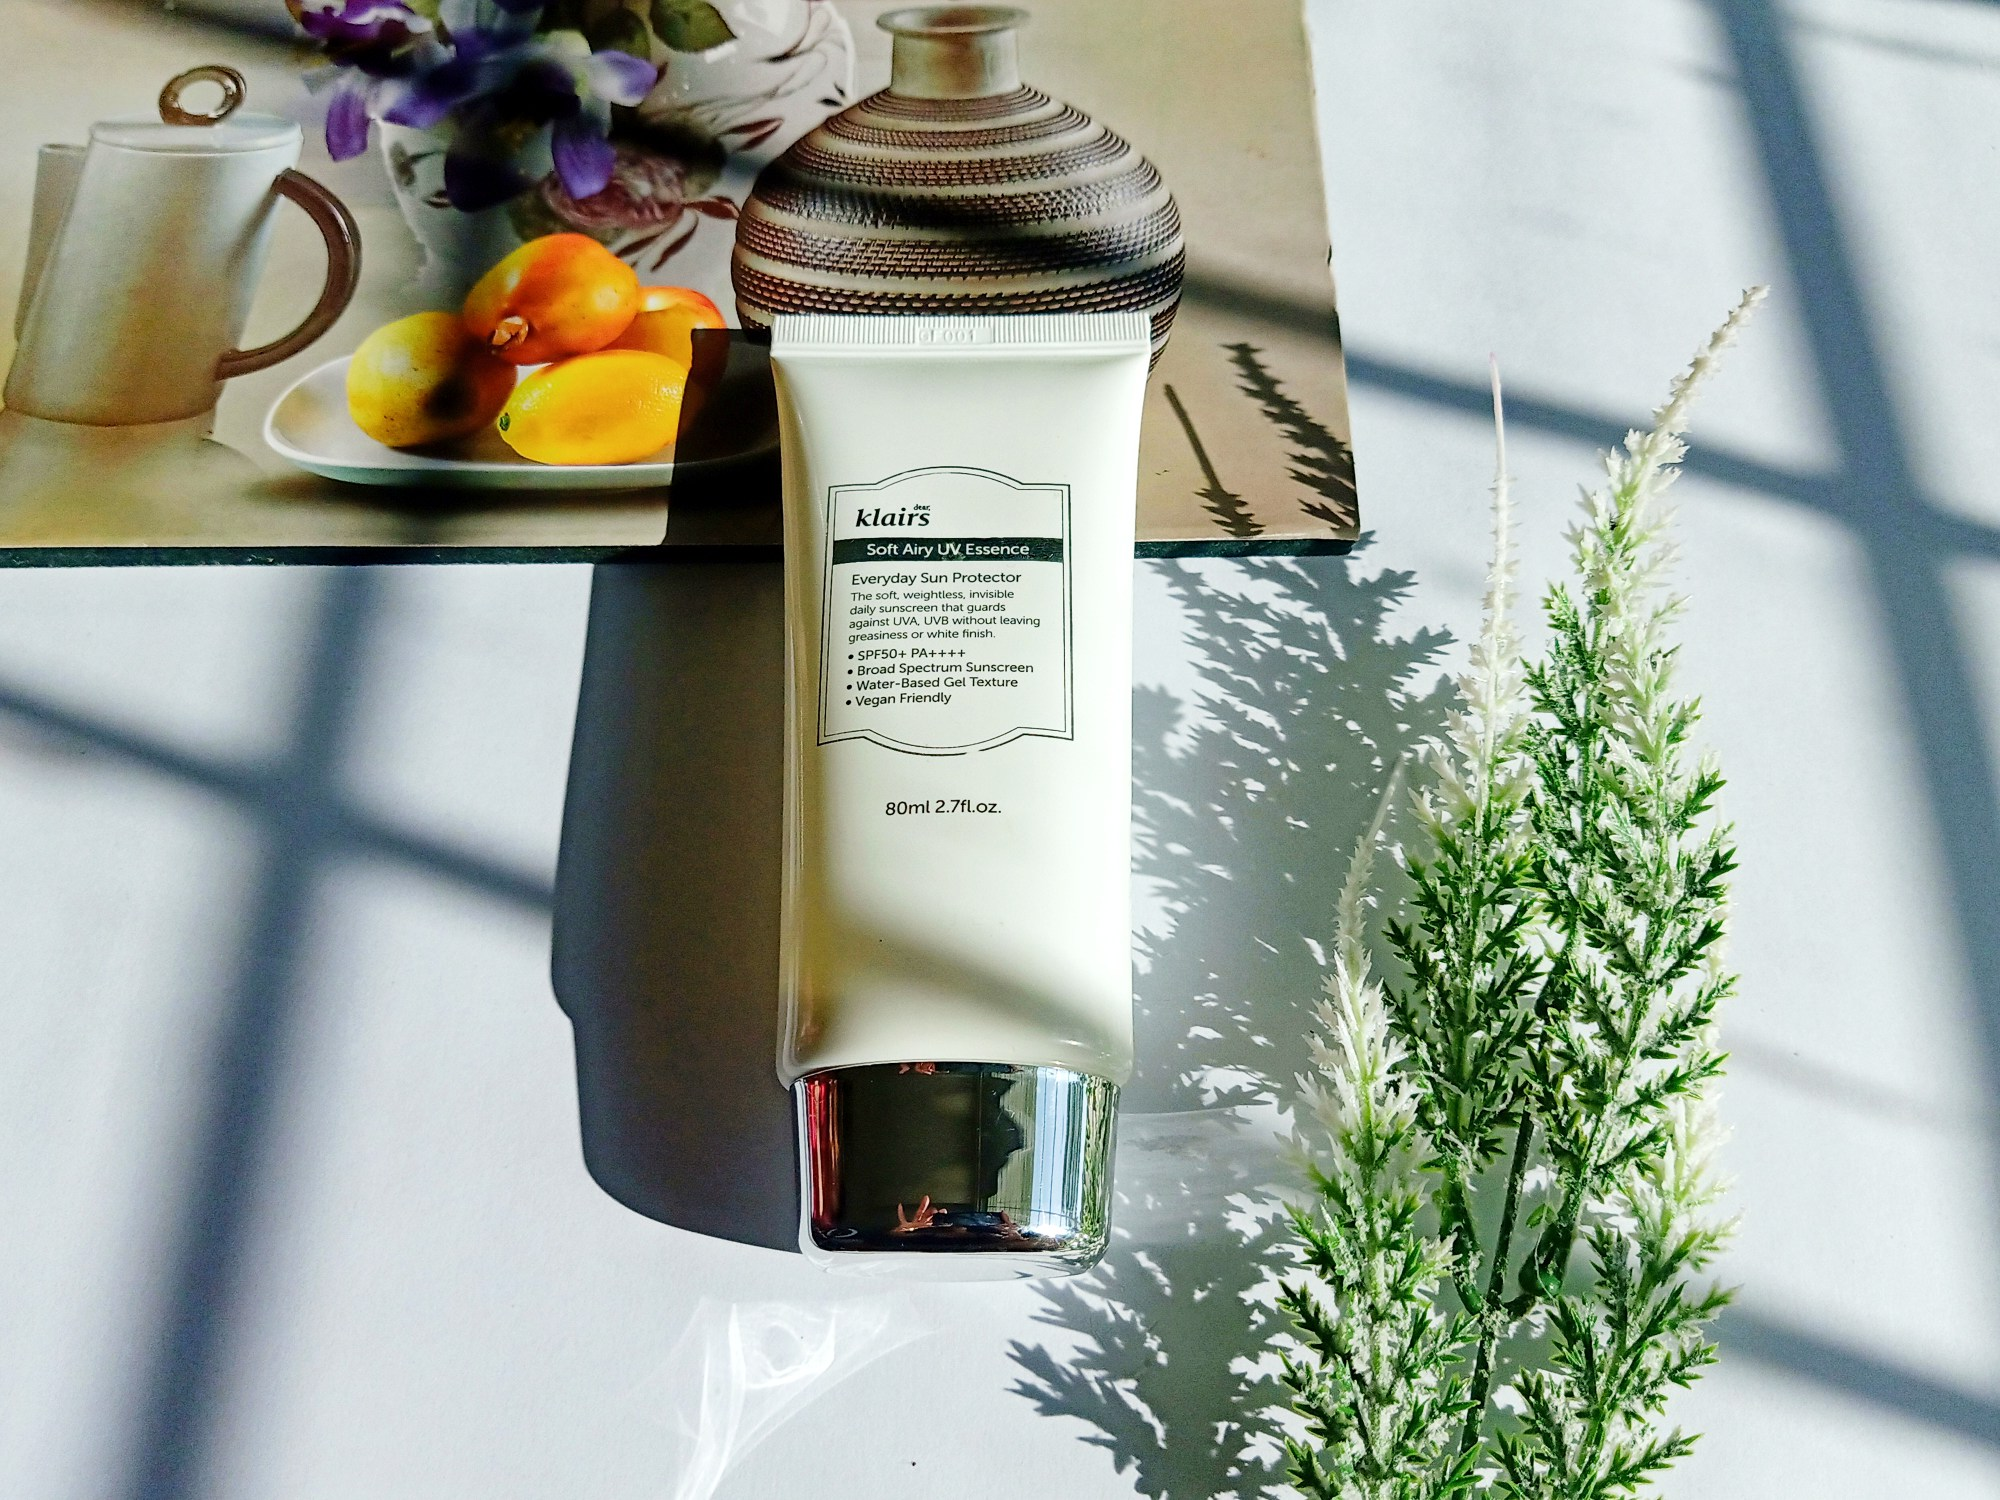 Why I Fell In Love with Klairs Soft Airy UV Essence SPF 50+ PA++++